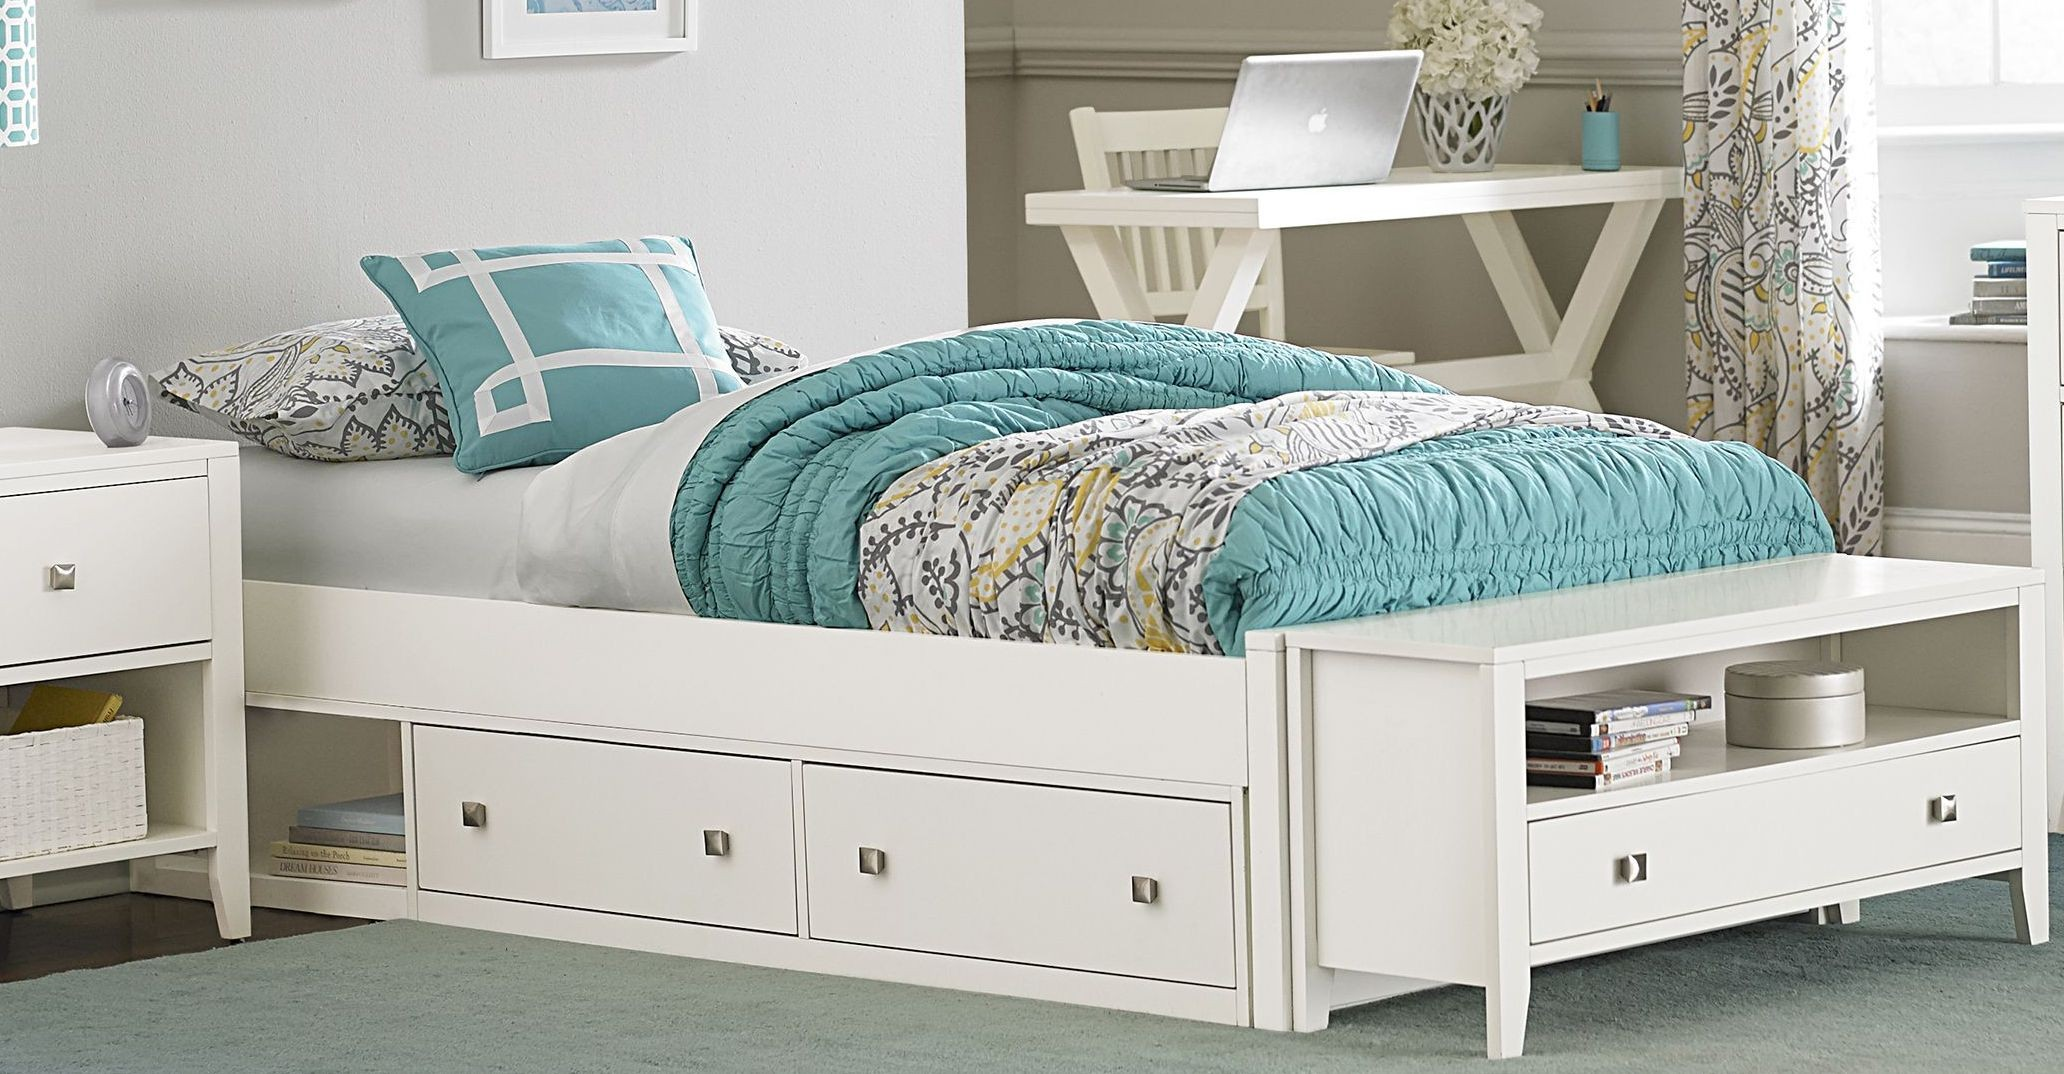 Pulse White Full Platform Bed With Storage From NE Kids